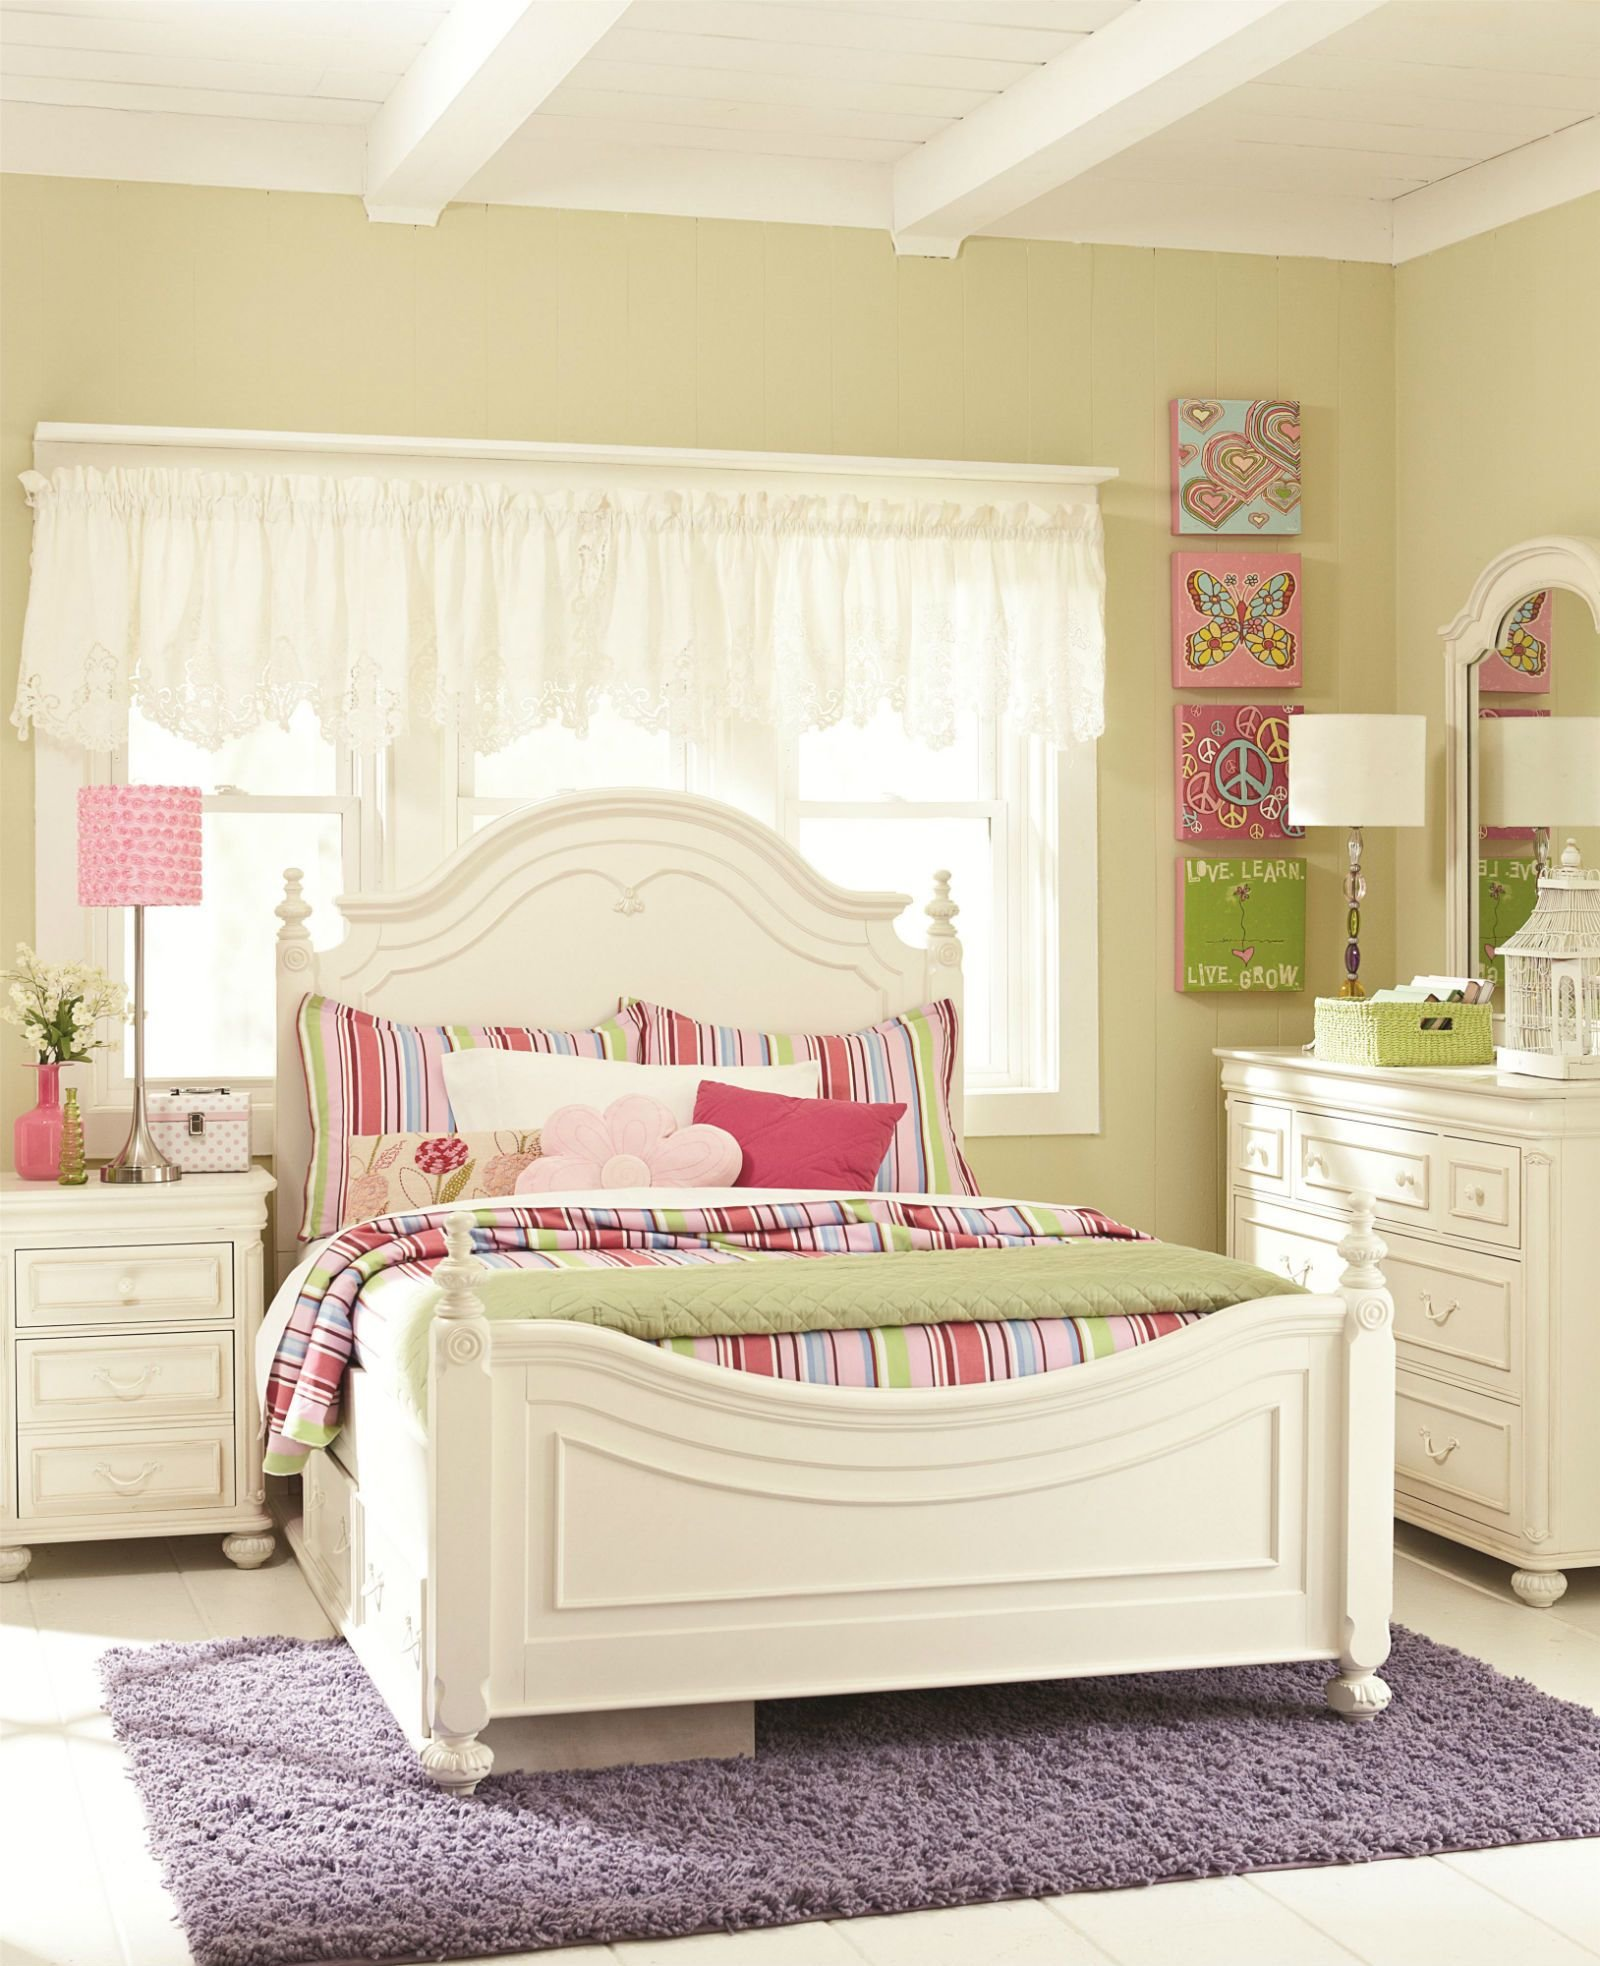 Best Legacy Classic Kids Charlotte Low Poster Bedroom Set With Underbed Storage In Antique White With Pictures